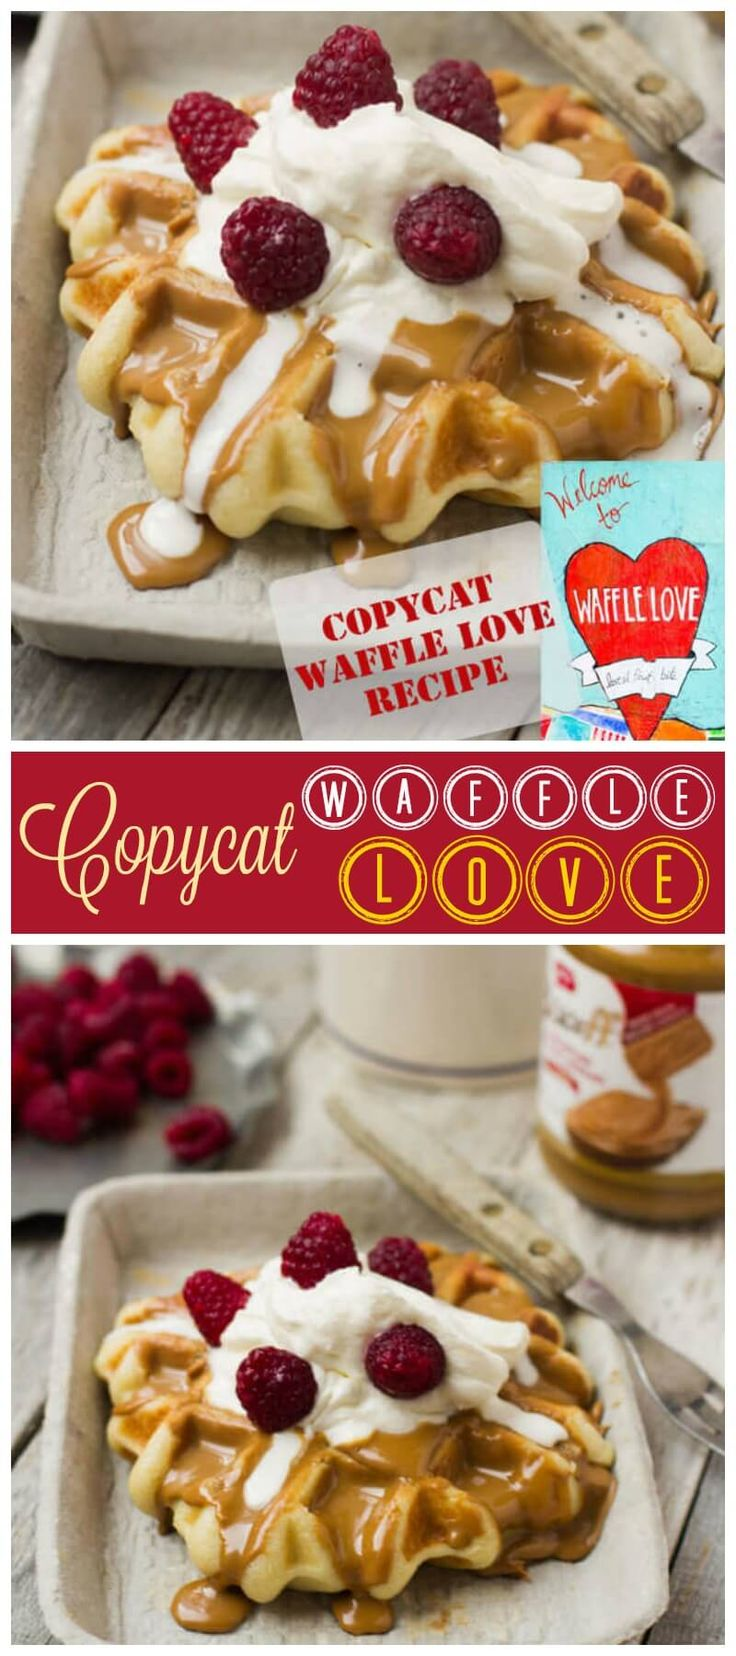 This Copycat Waffle Love Liege Waffle Recipe is the closest we've found to our favorite food truck waffles here in Utah using a Liege waffle.